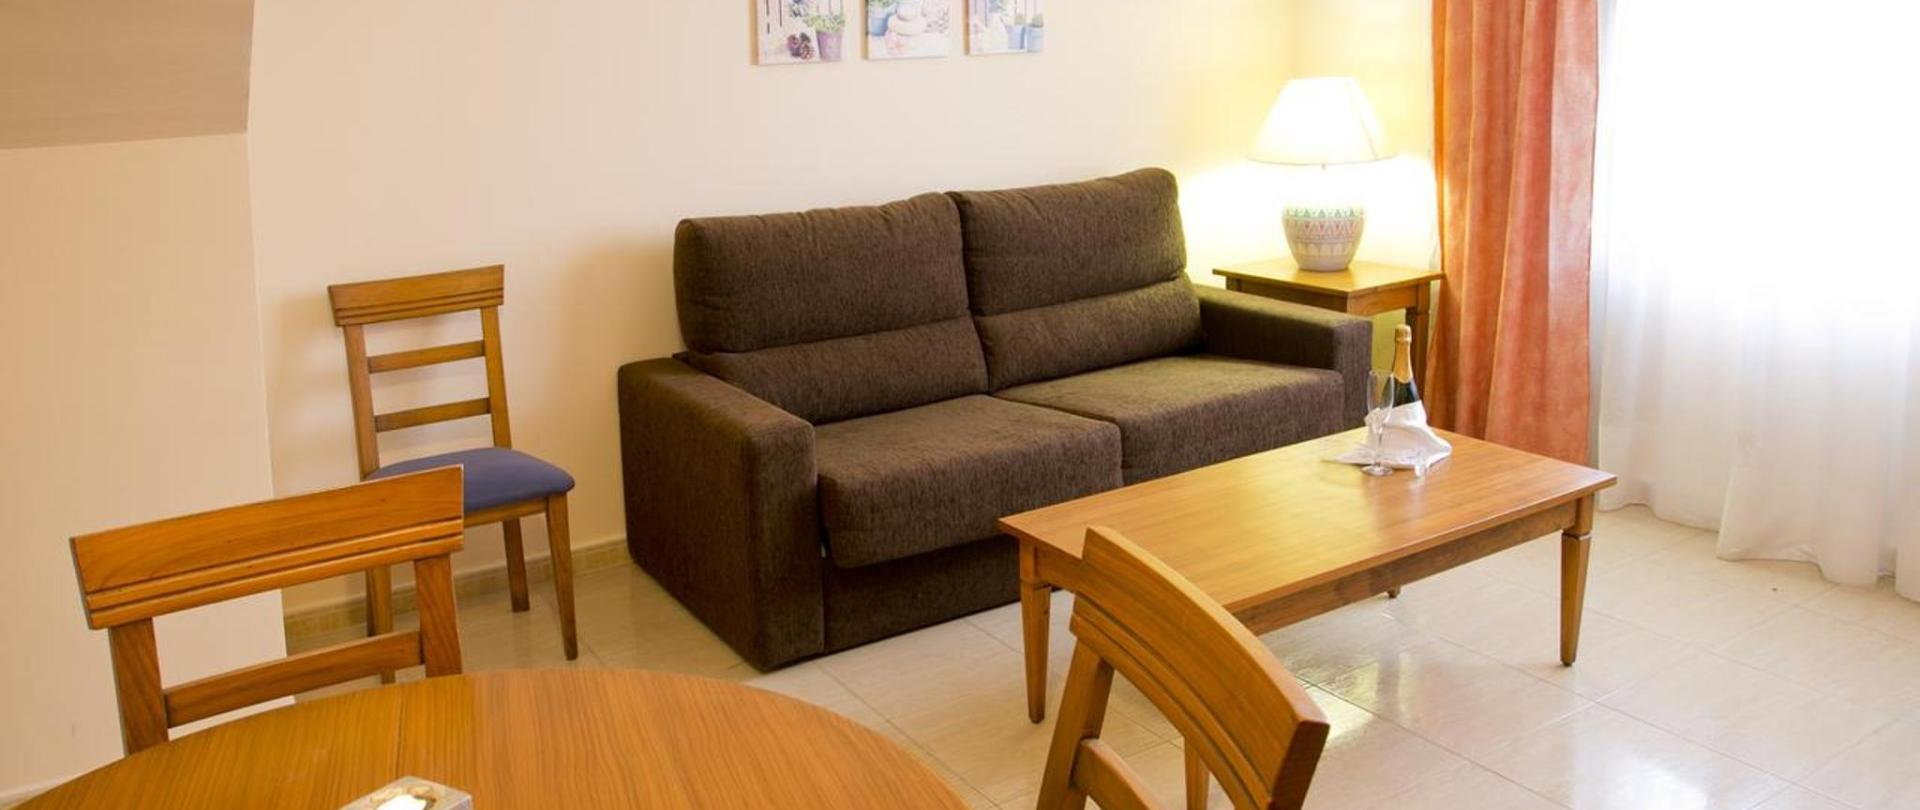 Apartment Livingroom.jpg